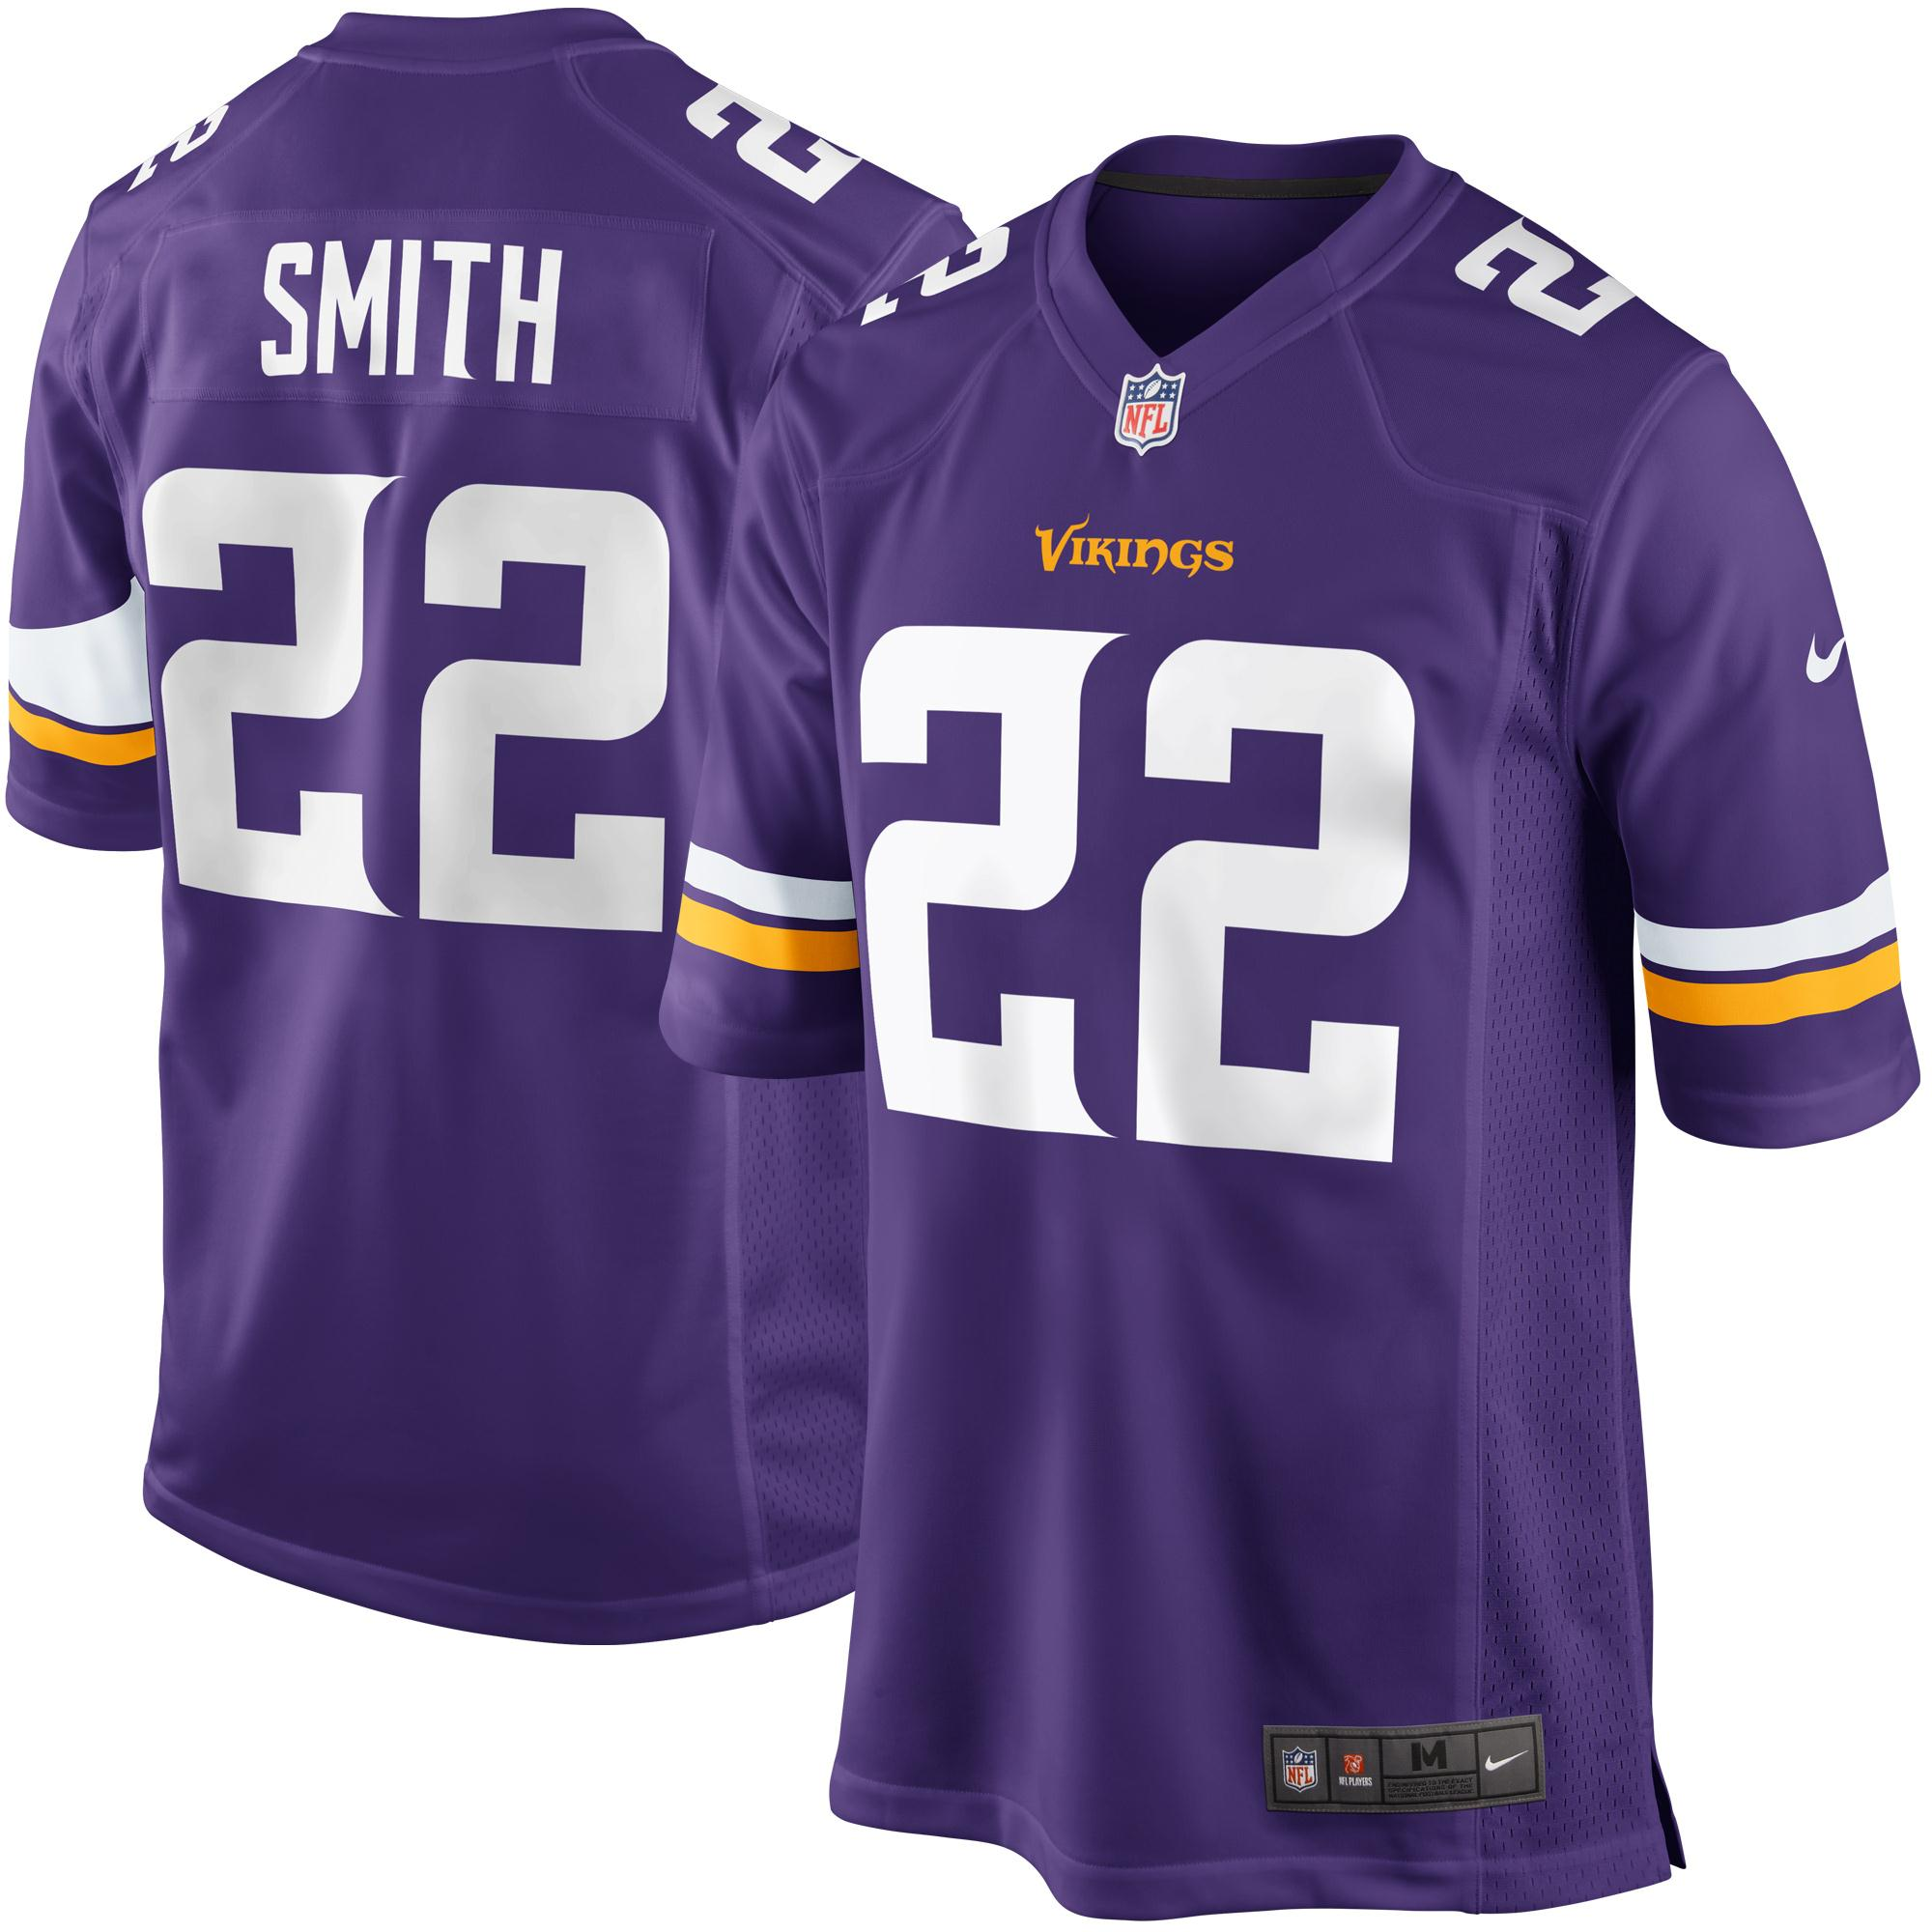 Harrison Smith Minnesota Vikings Nike Youth Team Color Game Jersey - Purple